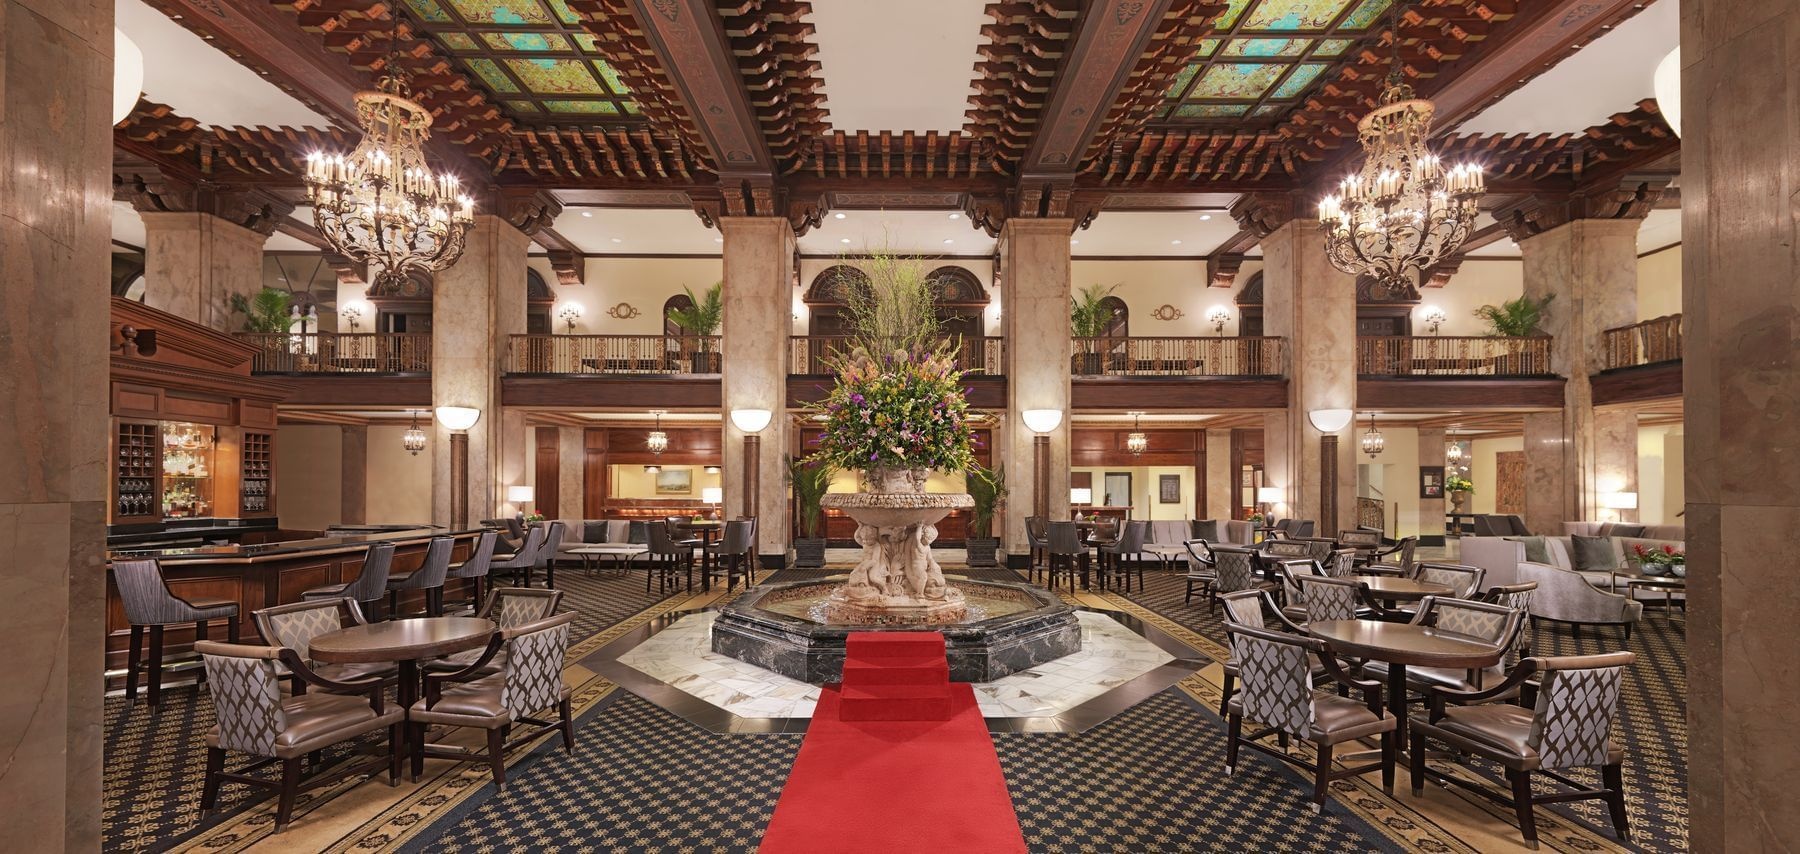 The Grand Lobby at The Peabody Memphis